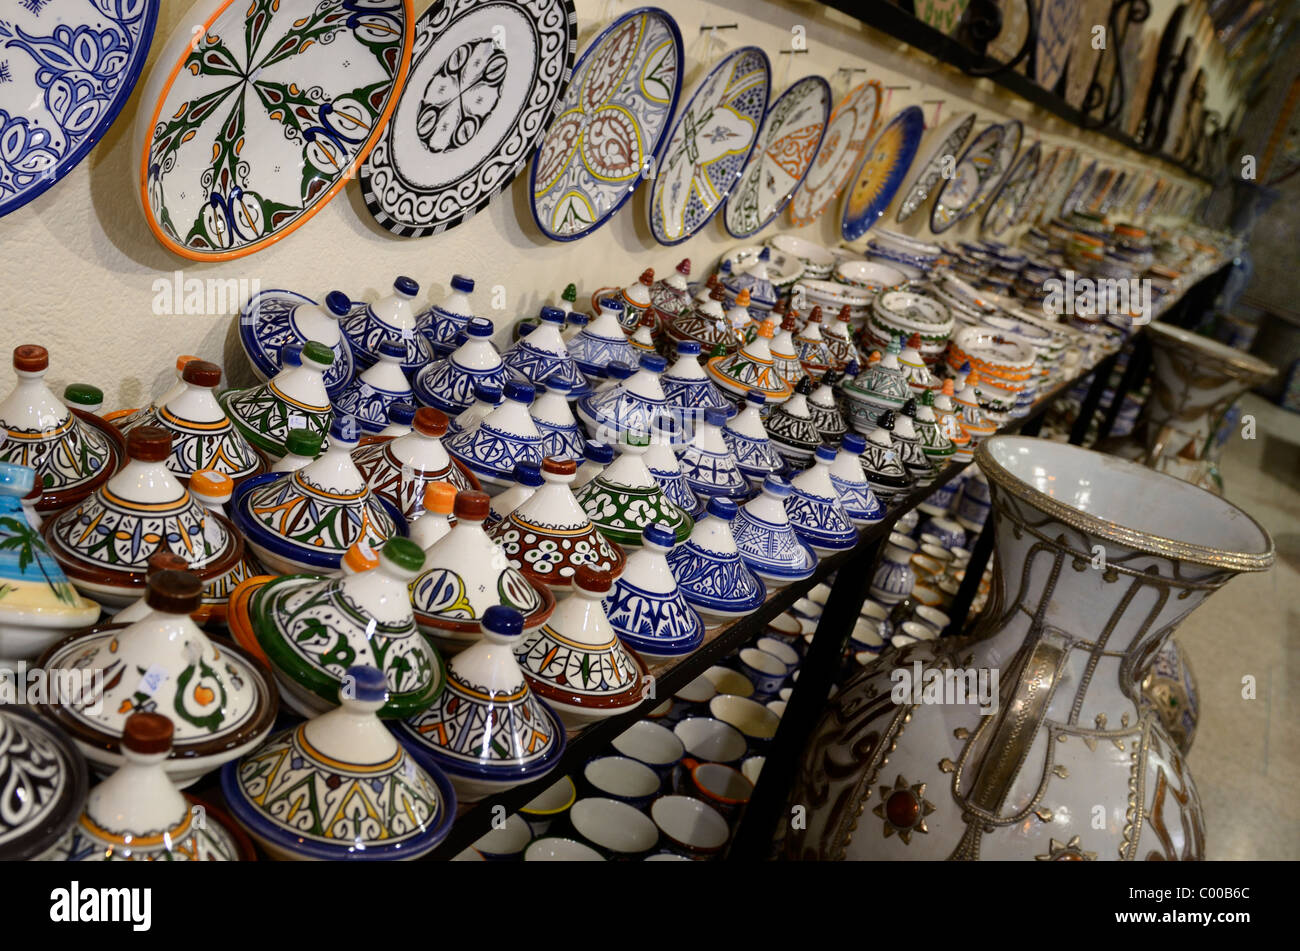 Brightly colored tagine bowls and plates in a ceramic shop in Fes el Bali Medina Morocco - Stock Image